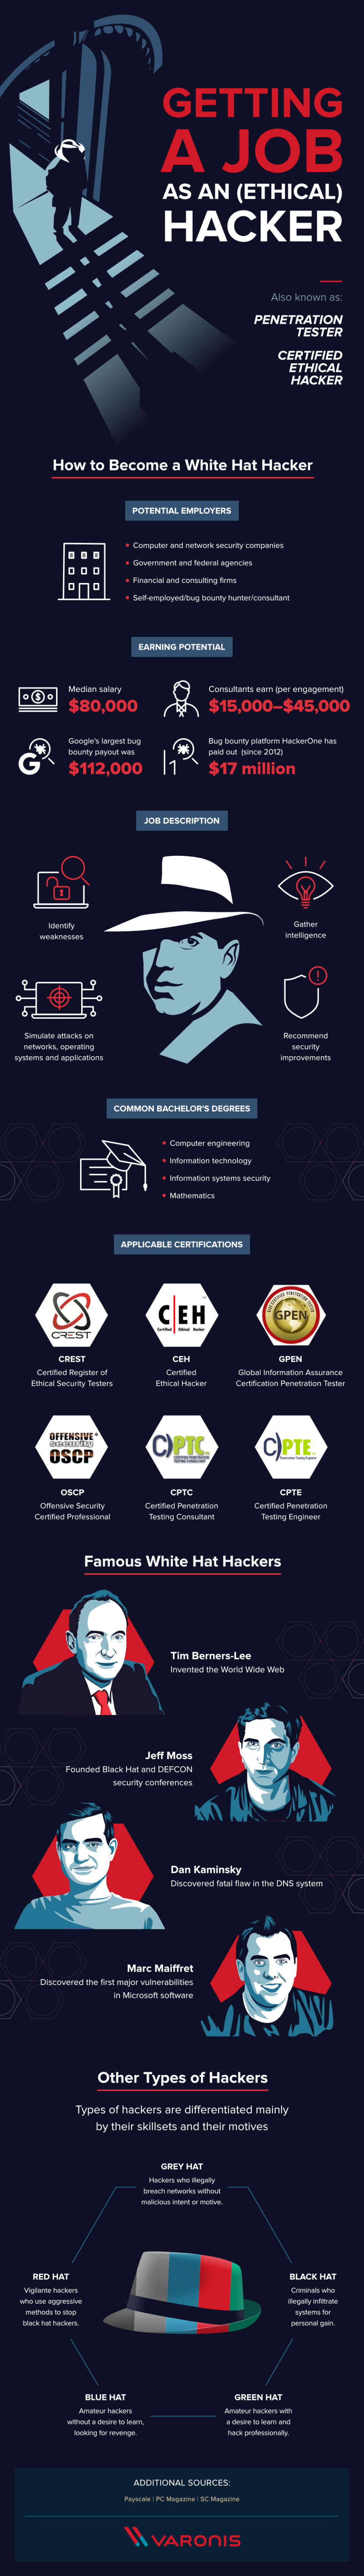 What does it take to be an ethical hacker? #infographic